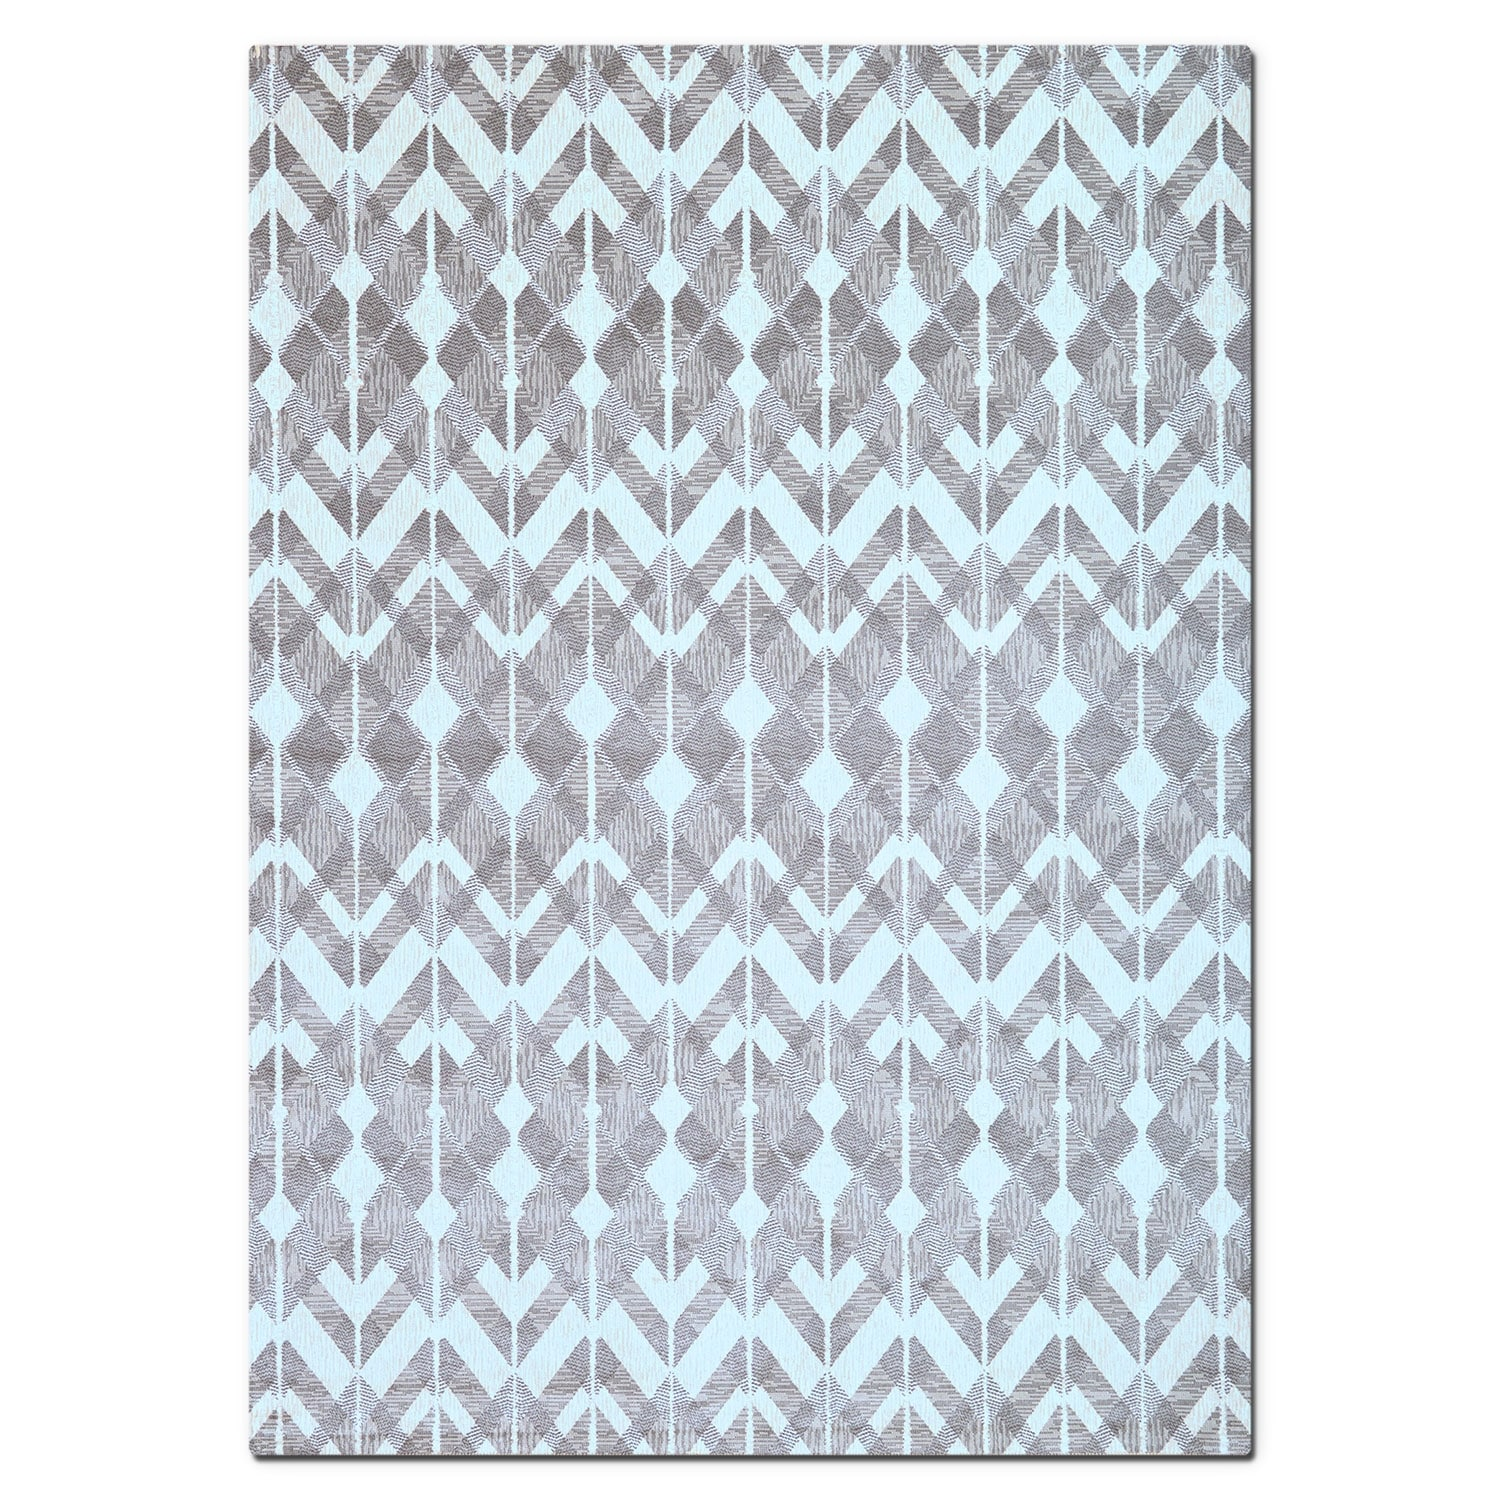 Rugs - Sonoma Gray Diamonds Area Rug (8' x 10')